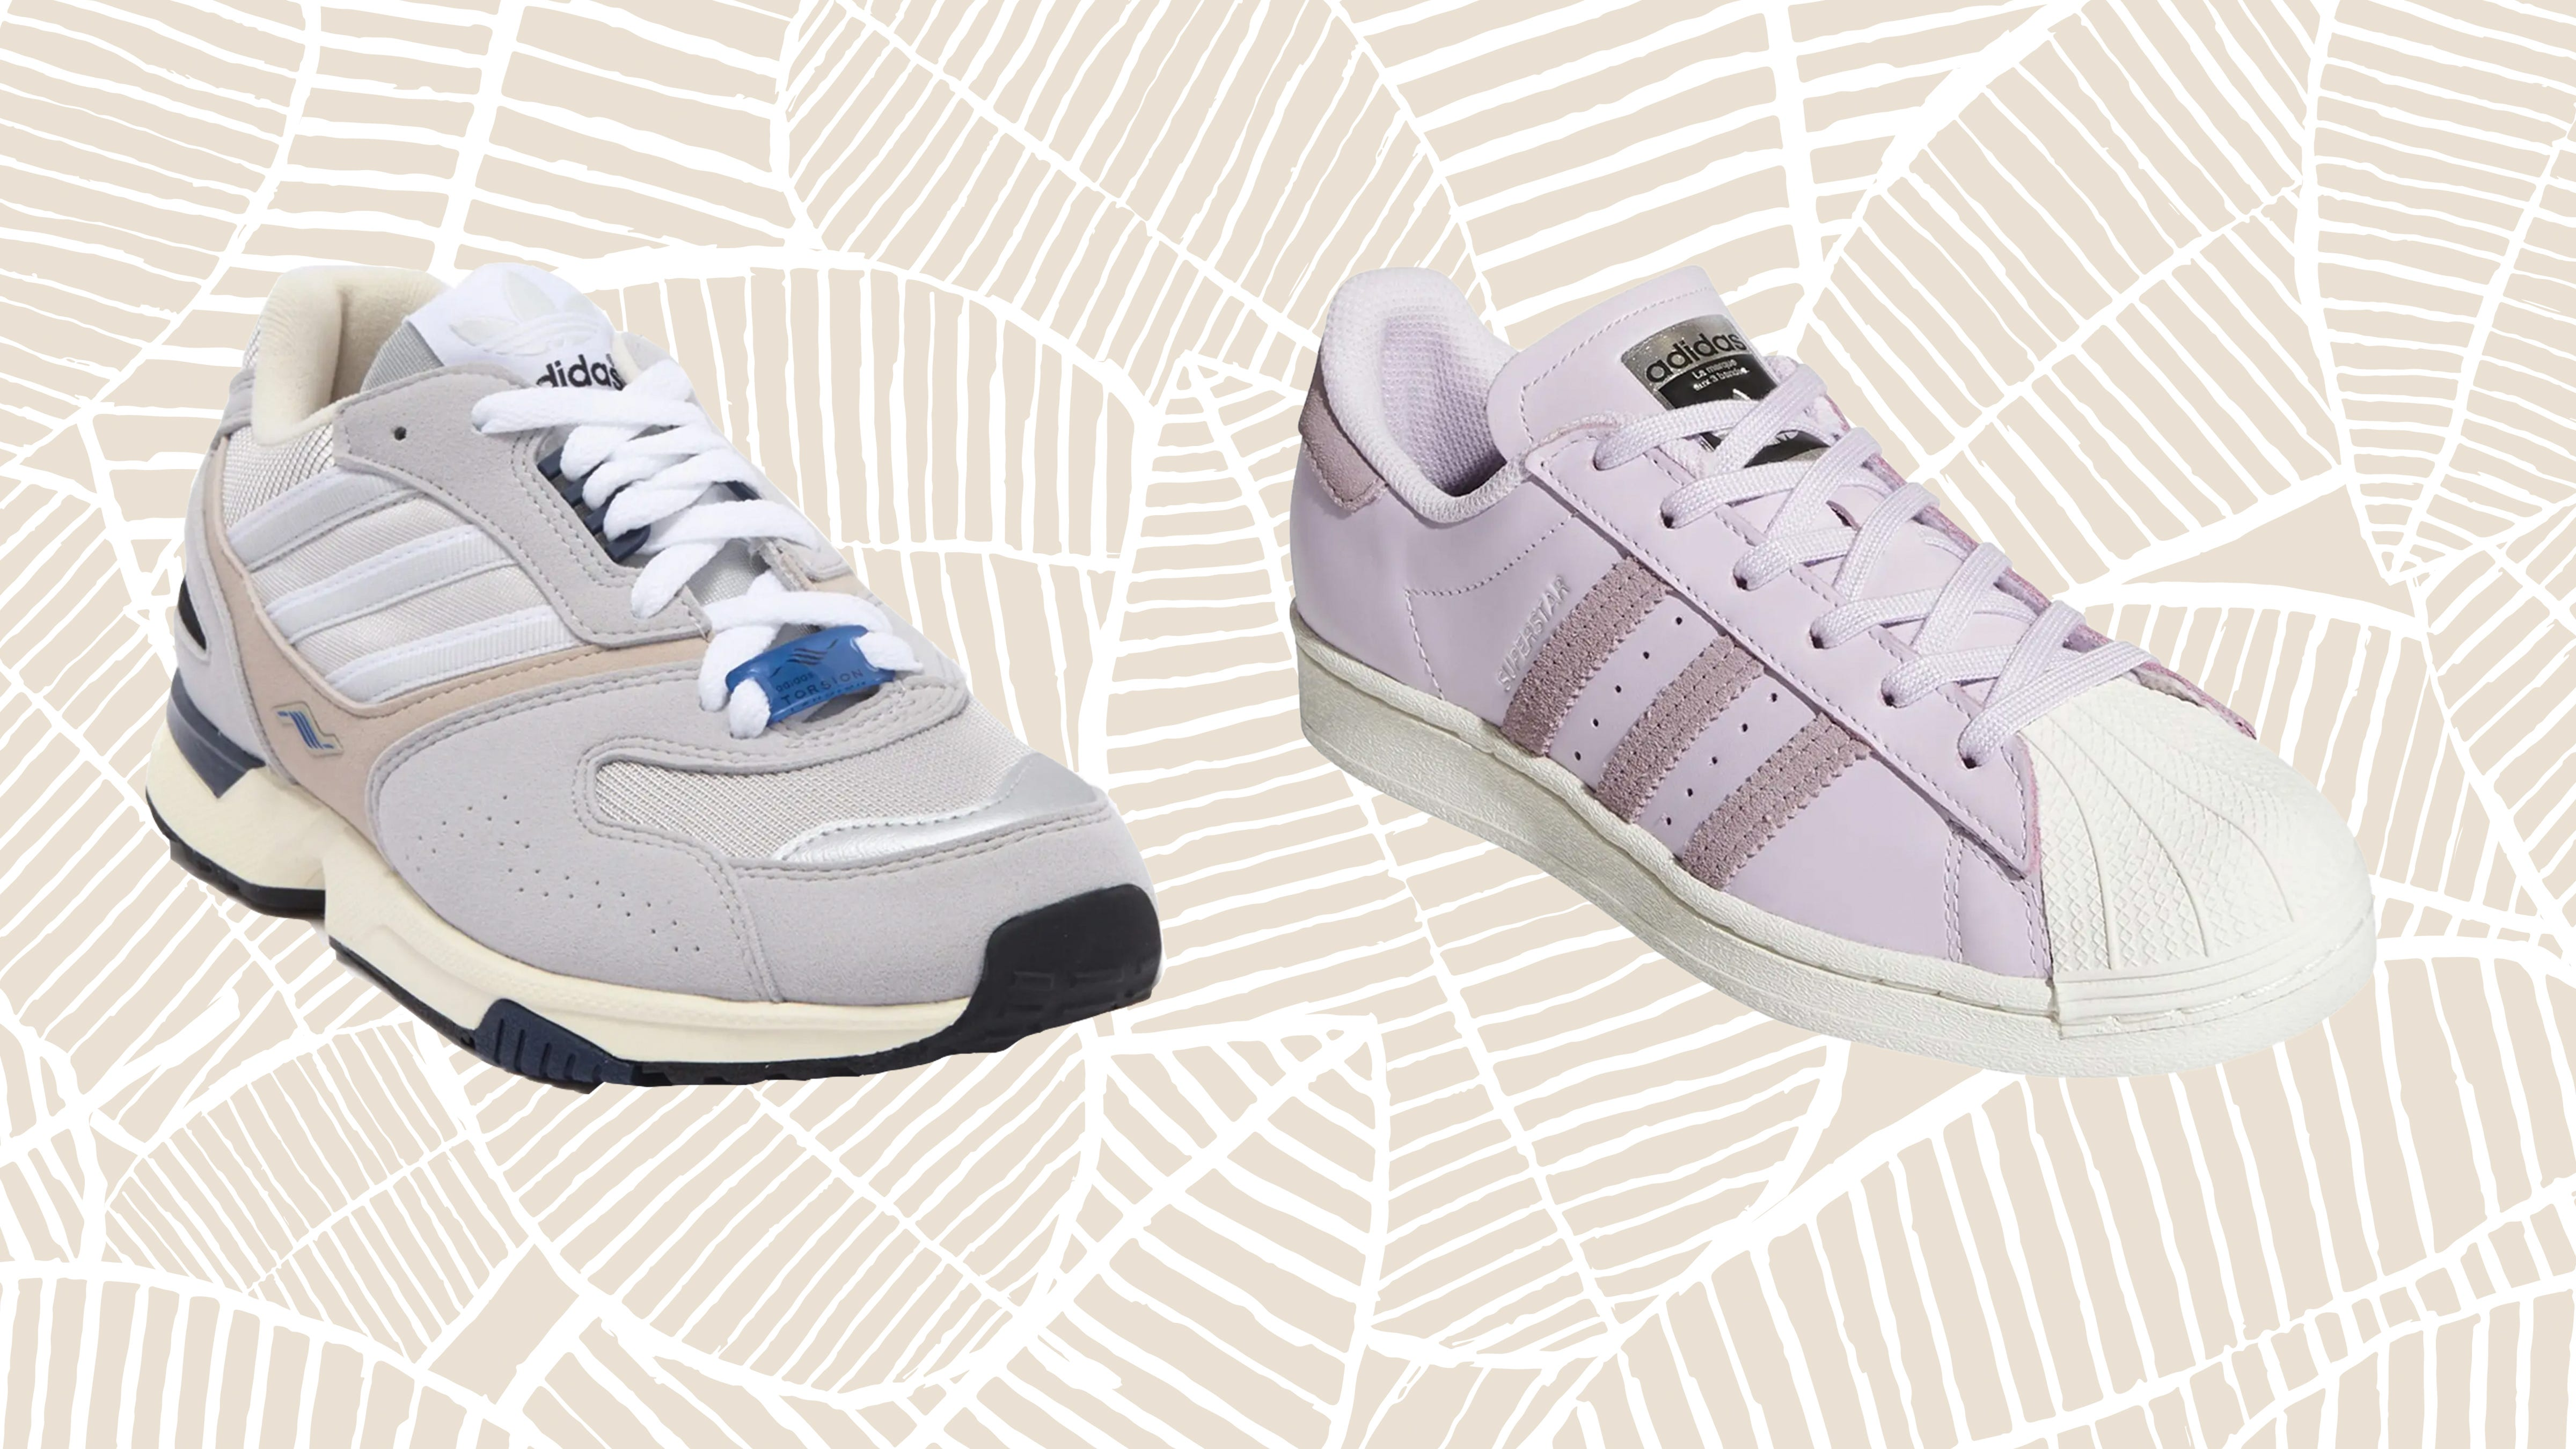 adidas sneakers: Get the brand's top-rated kicks for a serious ...